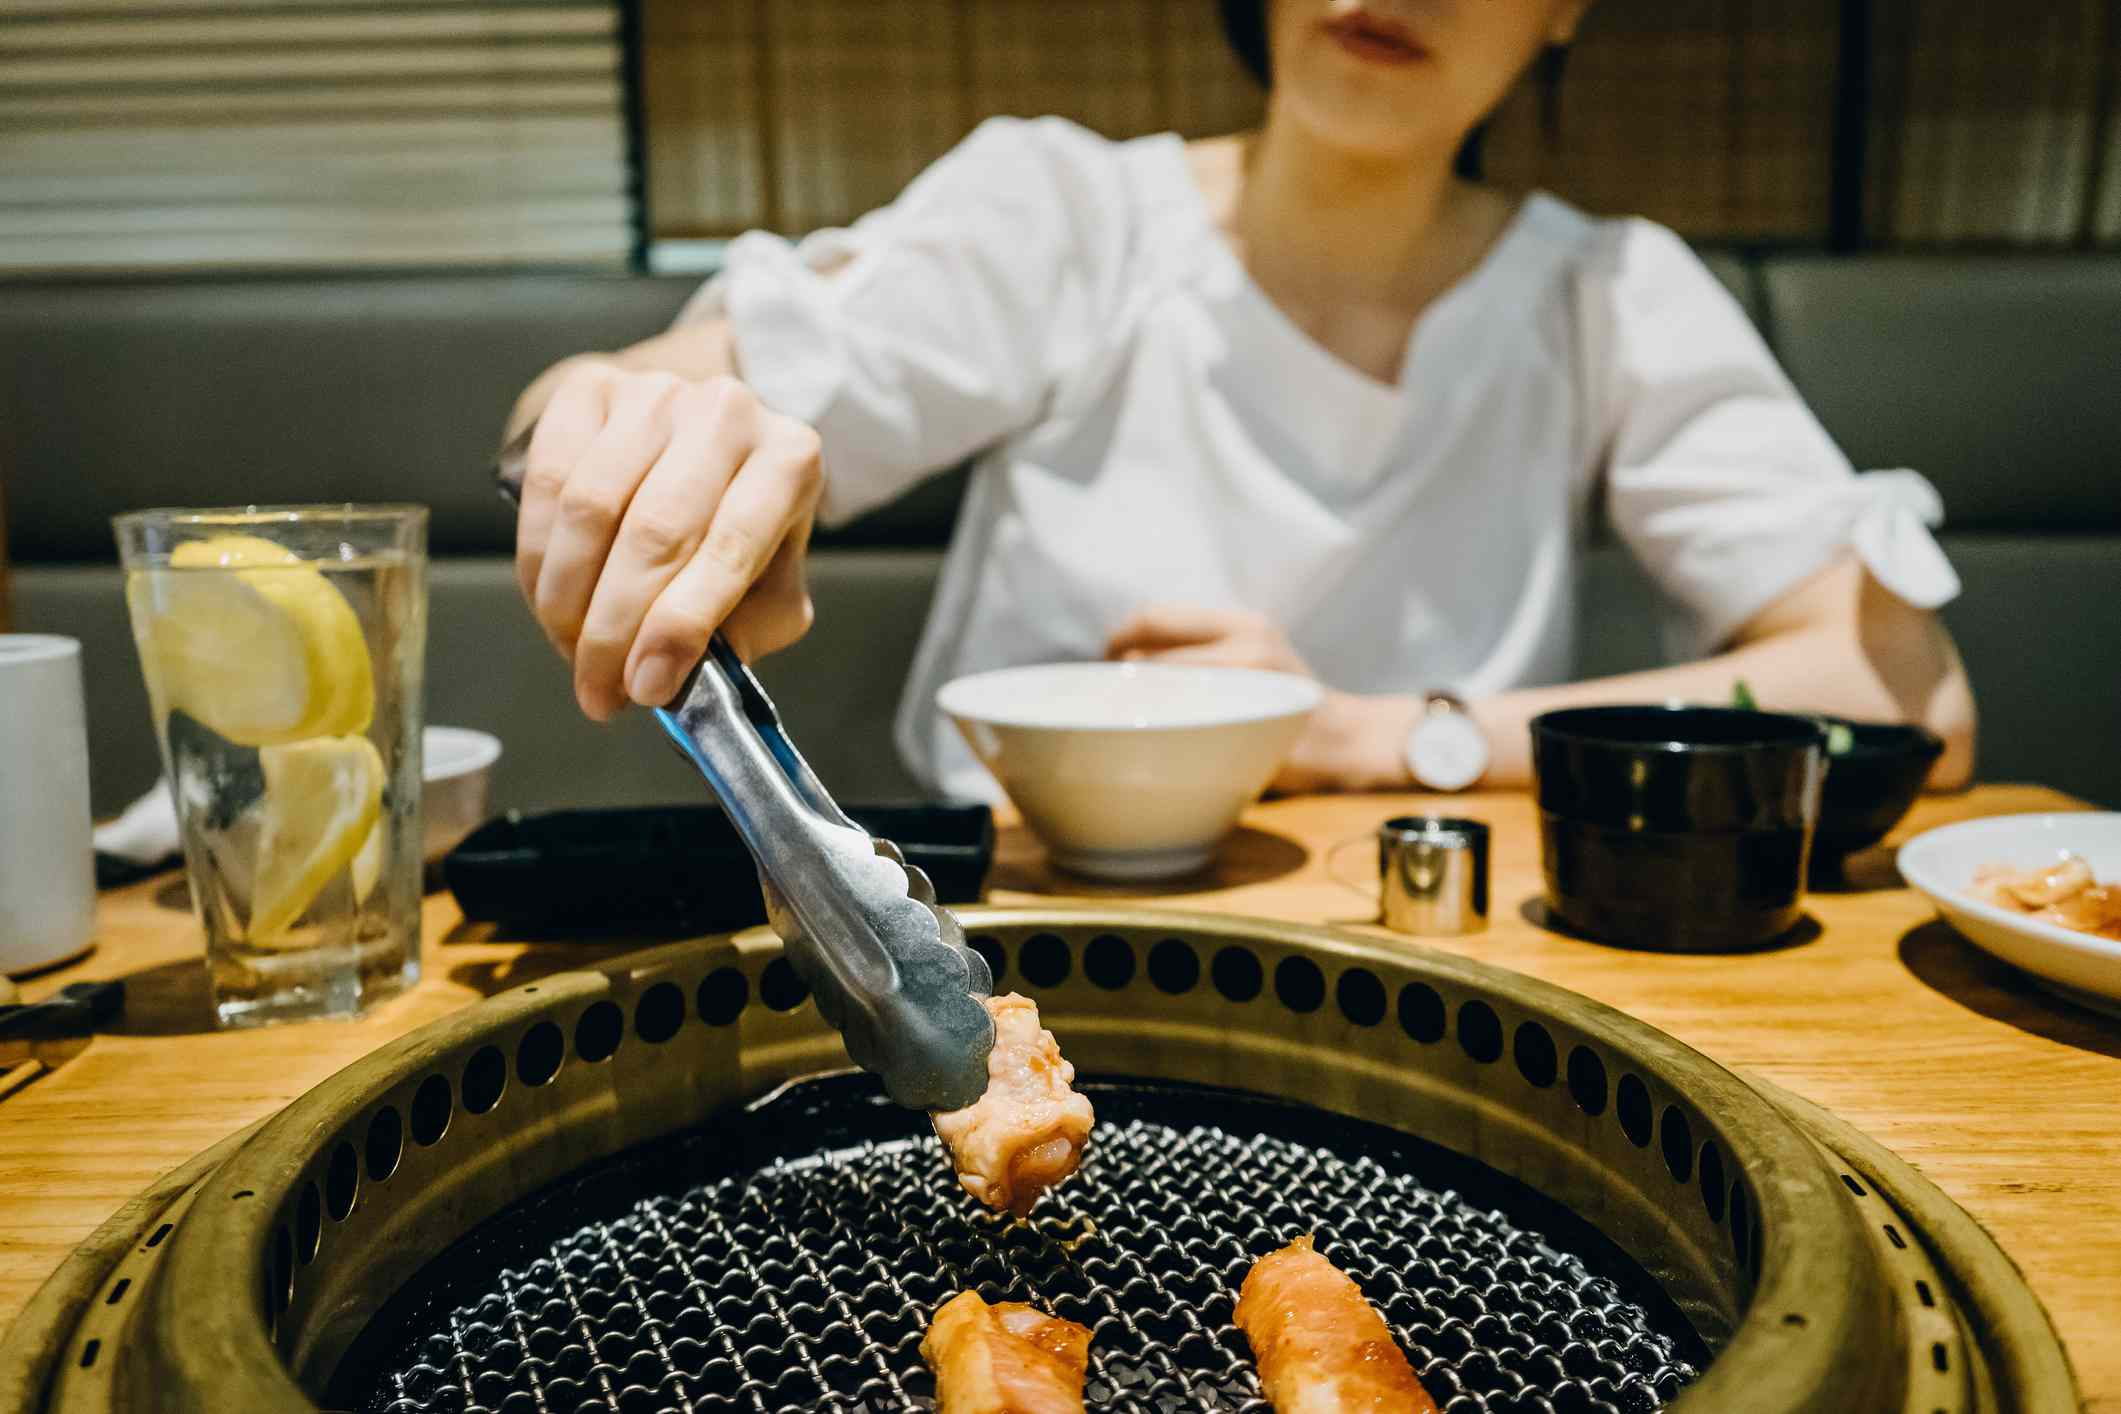 Japanese woman moving grilled intestines with tings on a in-table charcoal gril